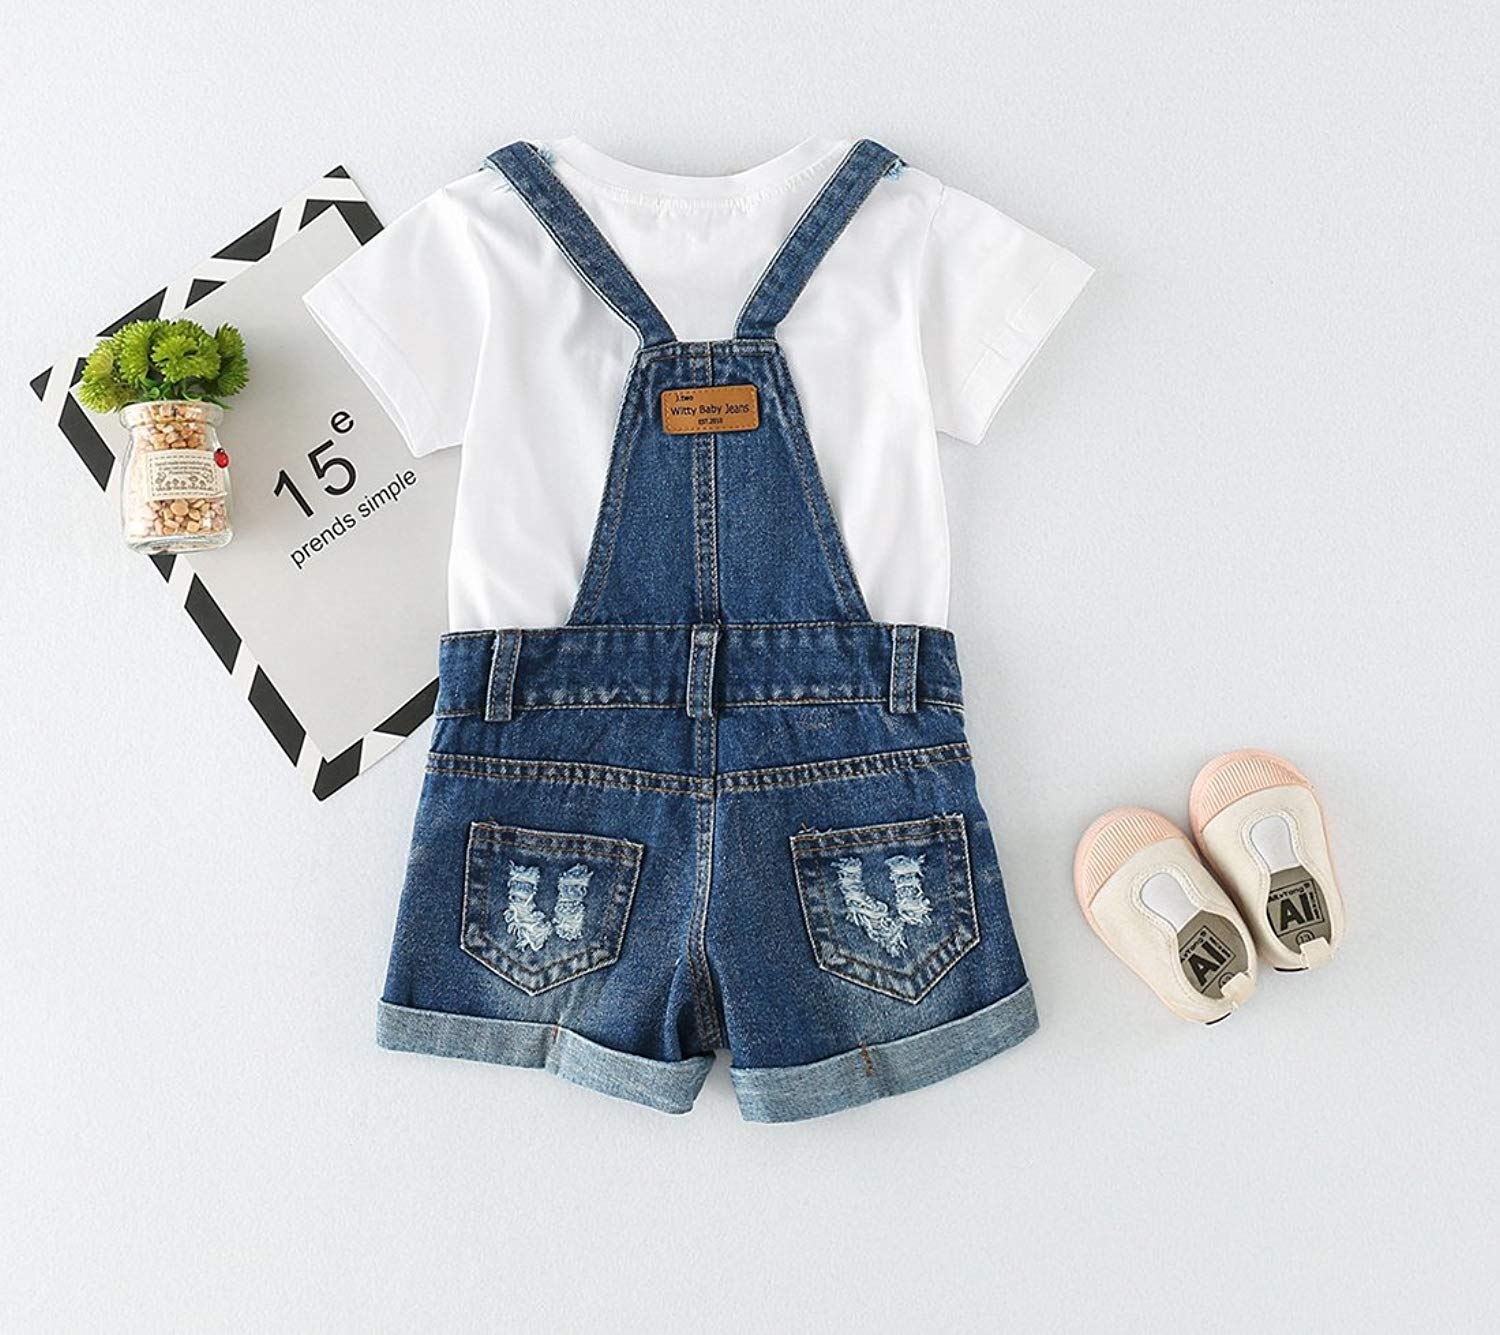 9535e0934d77 ... Sitmptol Big Girls Kid Denim Jumpsuit Boyfriend Jeans Denim Romper  Shortalls Bib Overalls 18Sep09-11 ...